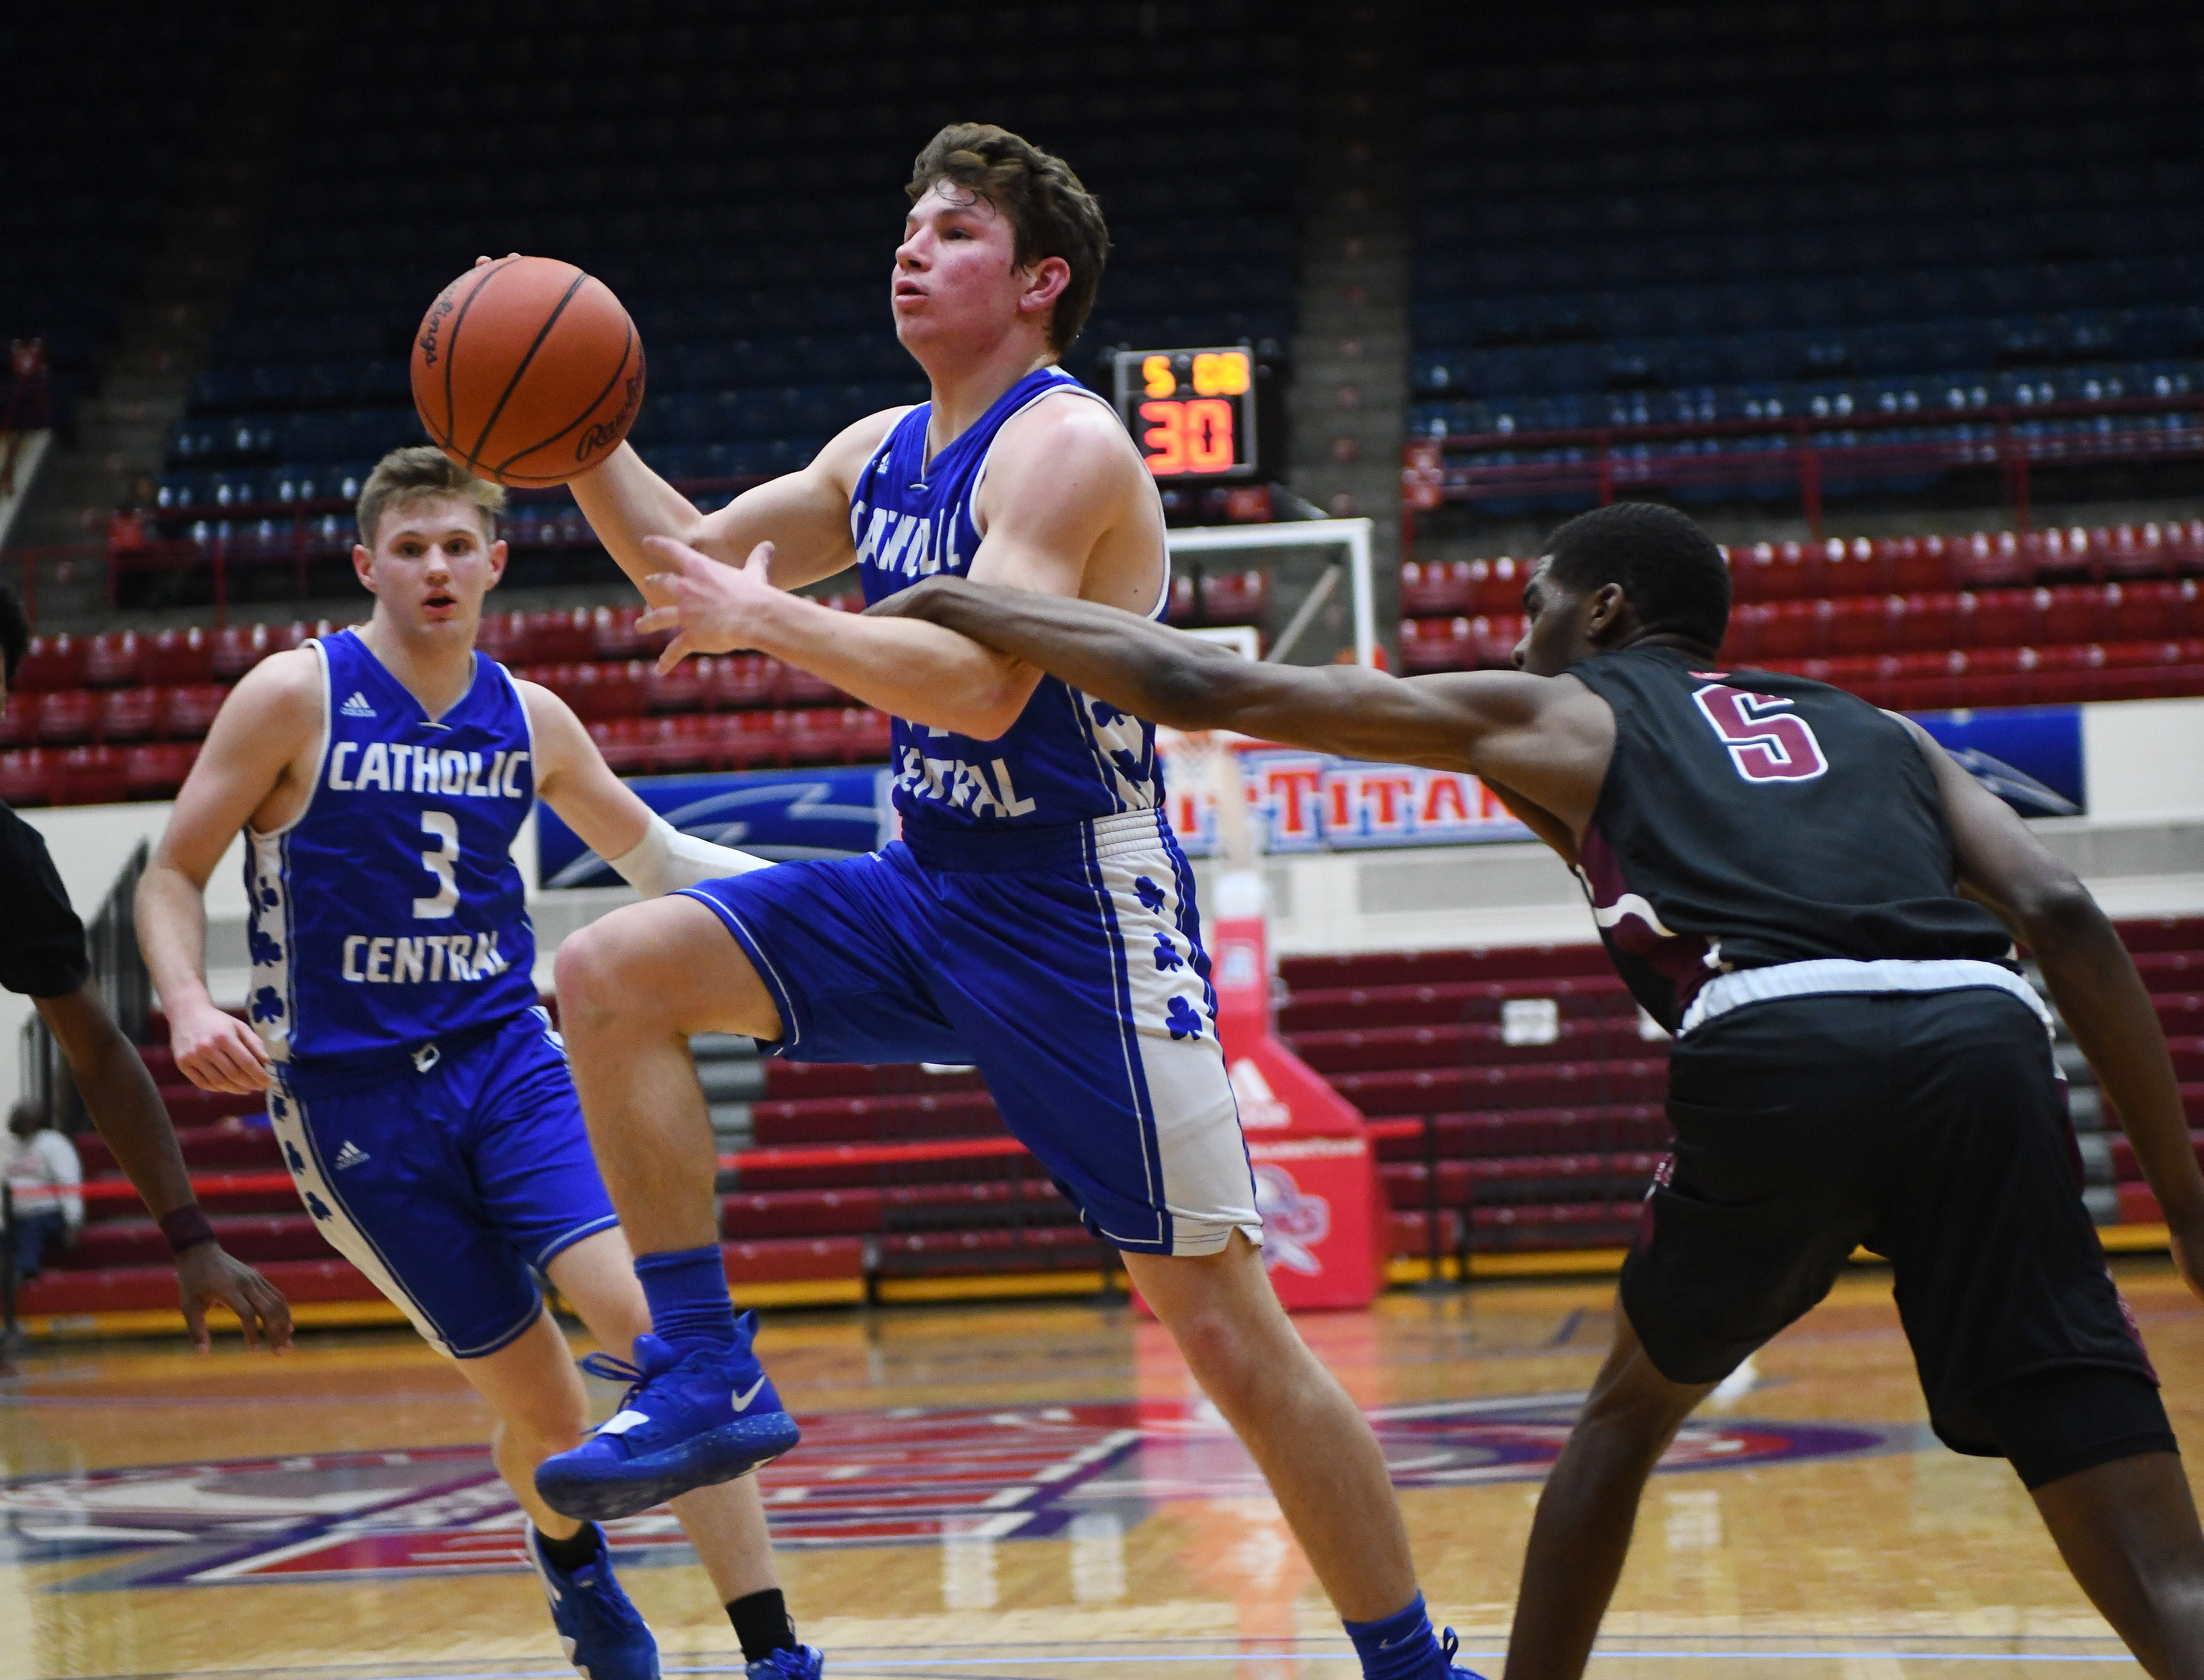 Catholic Central's Keegan Koehler gets fouled by Renaissance's Kaylein Marzetter as he drives to the basket in the first half of the consolation game.